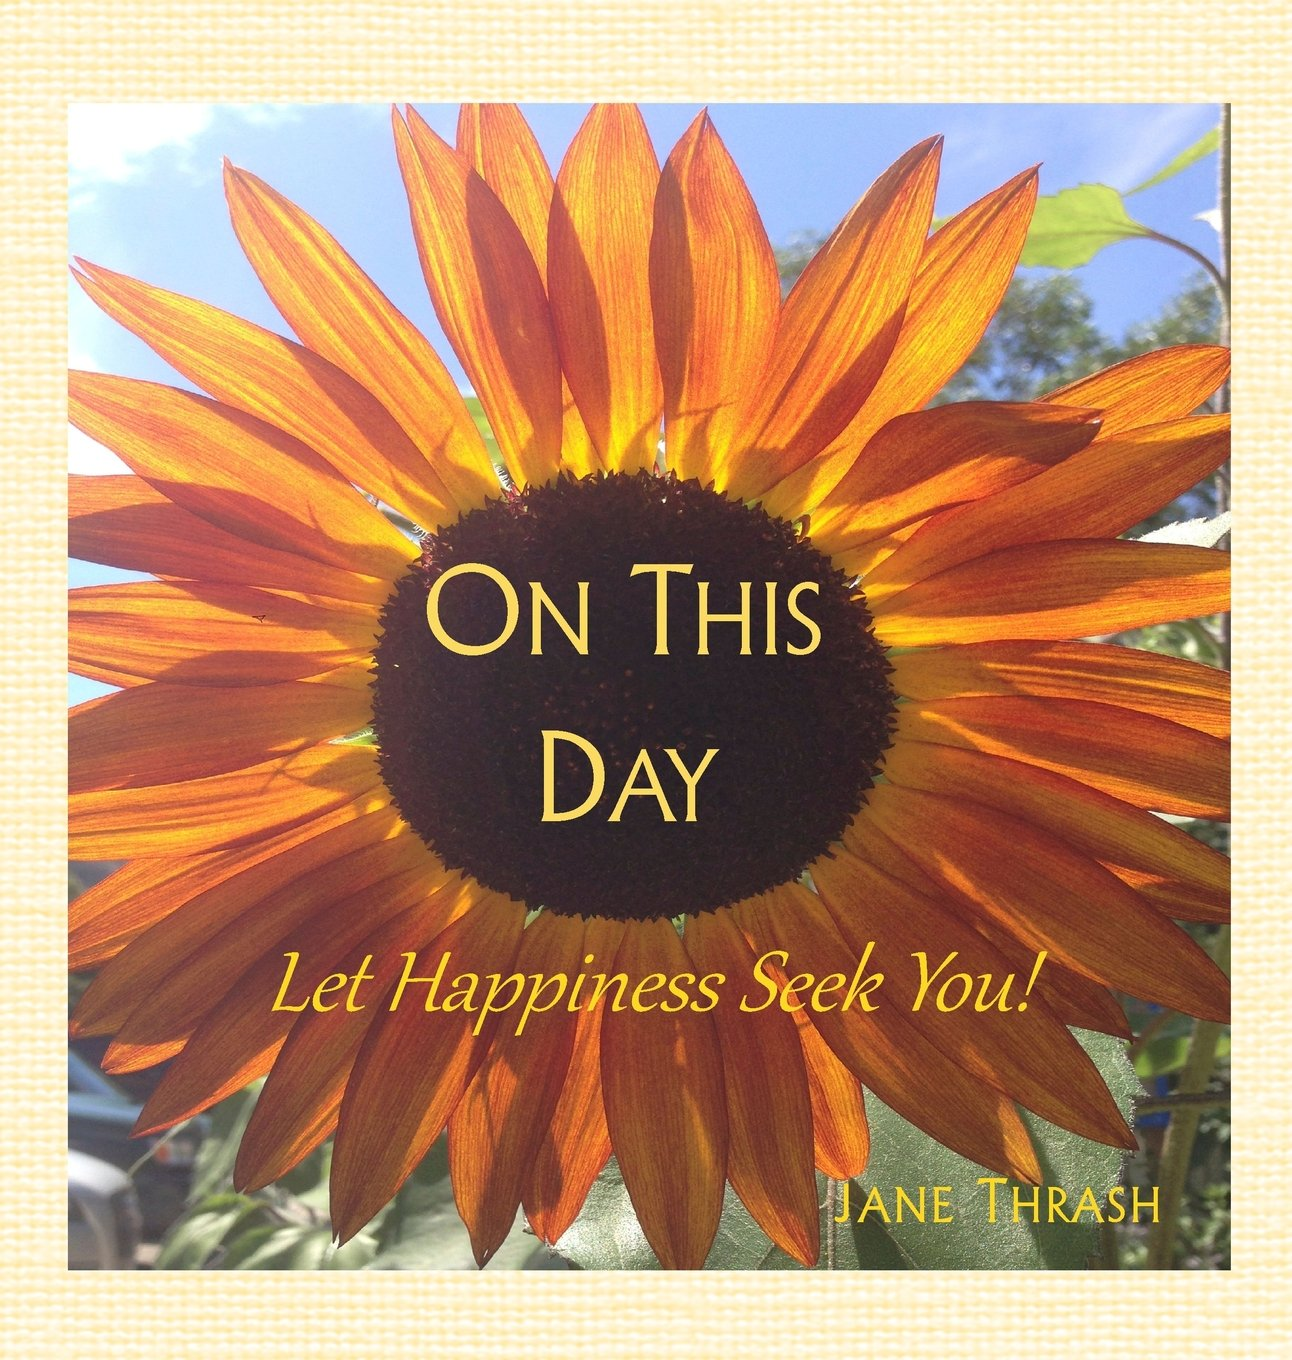 On This Day: Let Happiness Seek You!